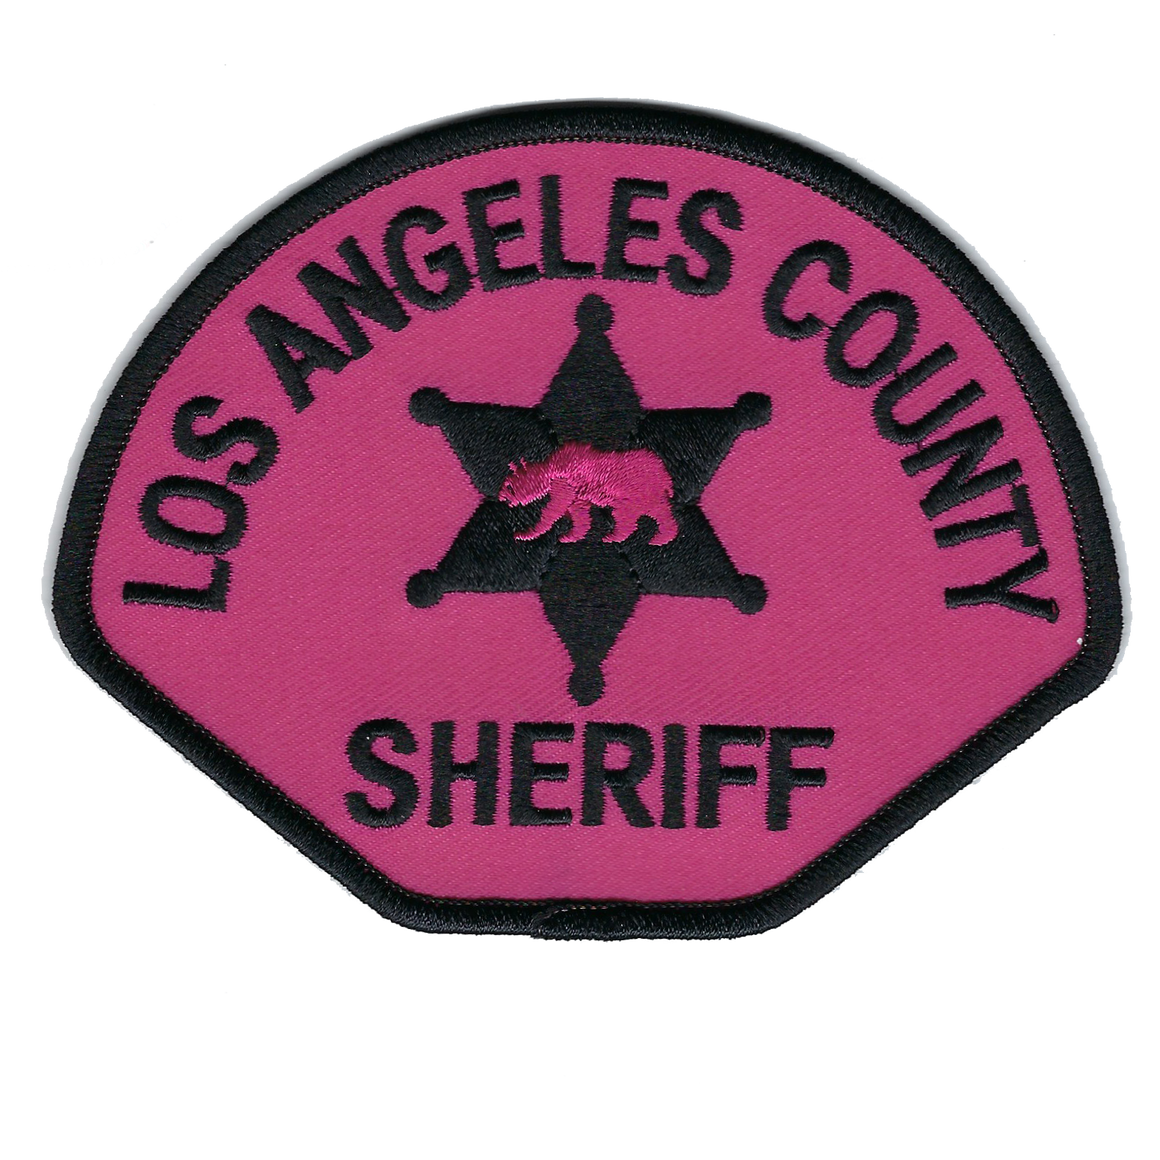 2018 LOS ANGELES COUNTY SHERIFF PINK PATCH #pinkpatchproject